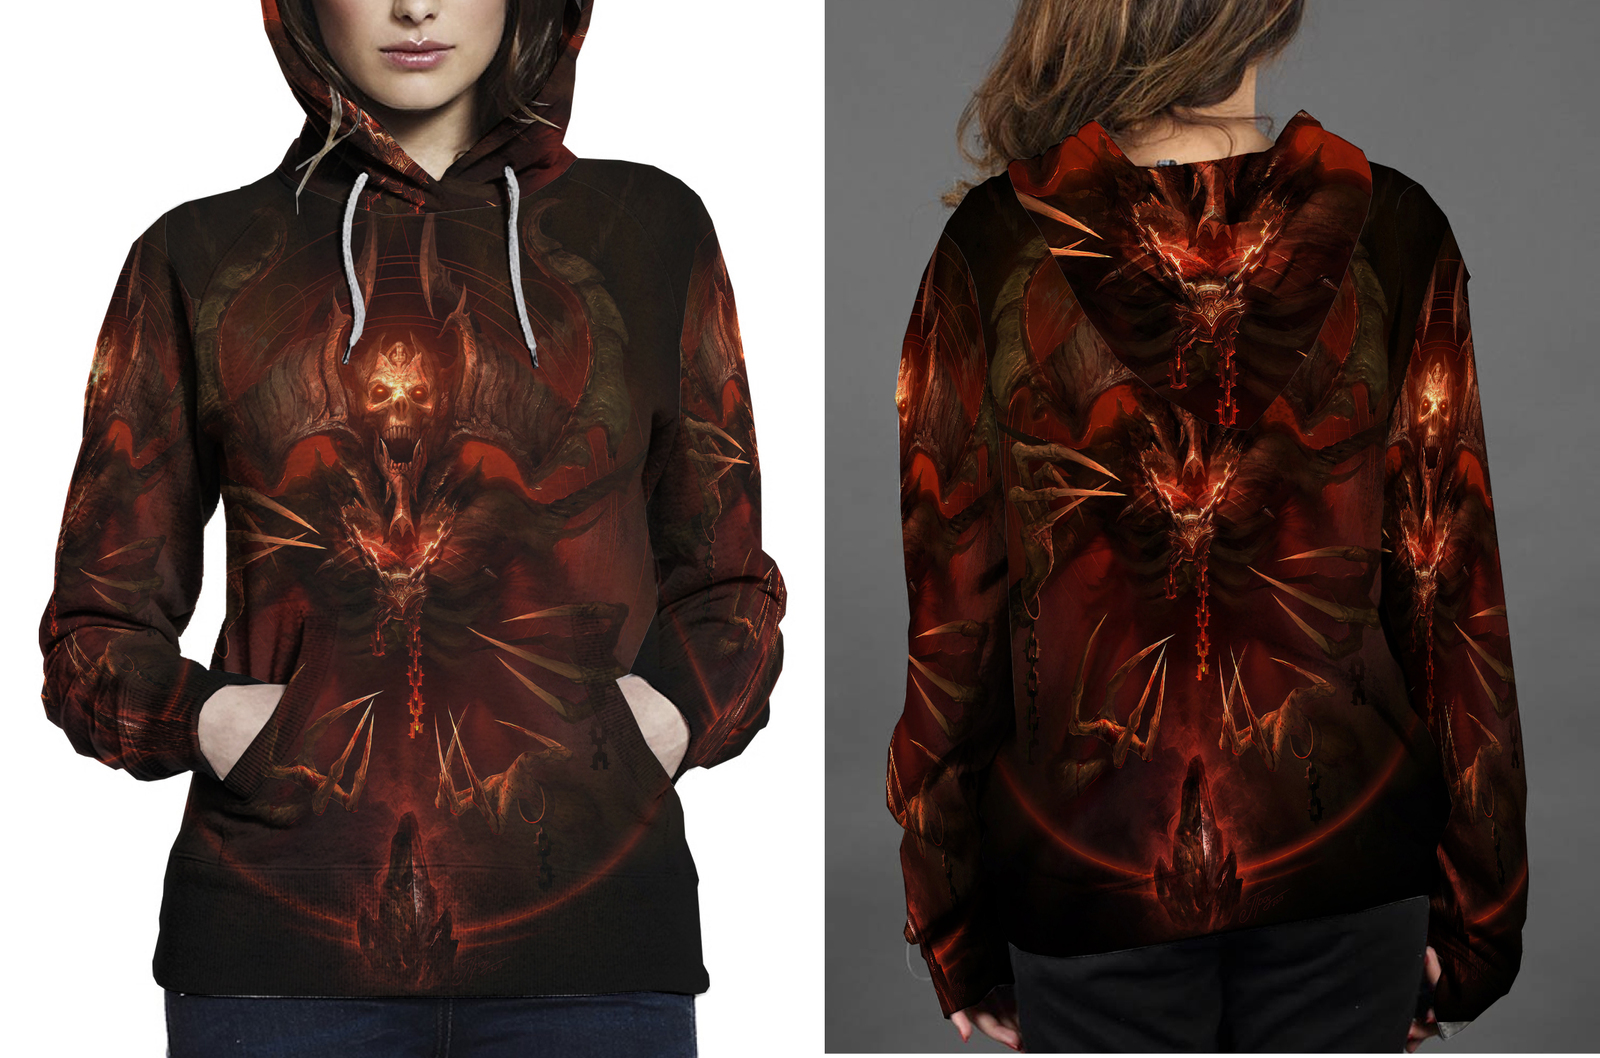 Mephisto  lord of hatred hoodie women s